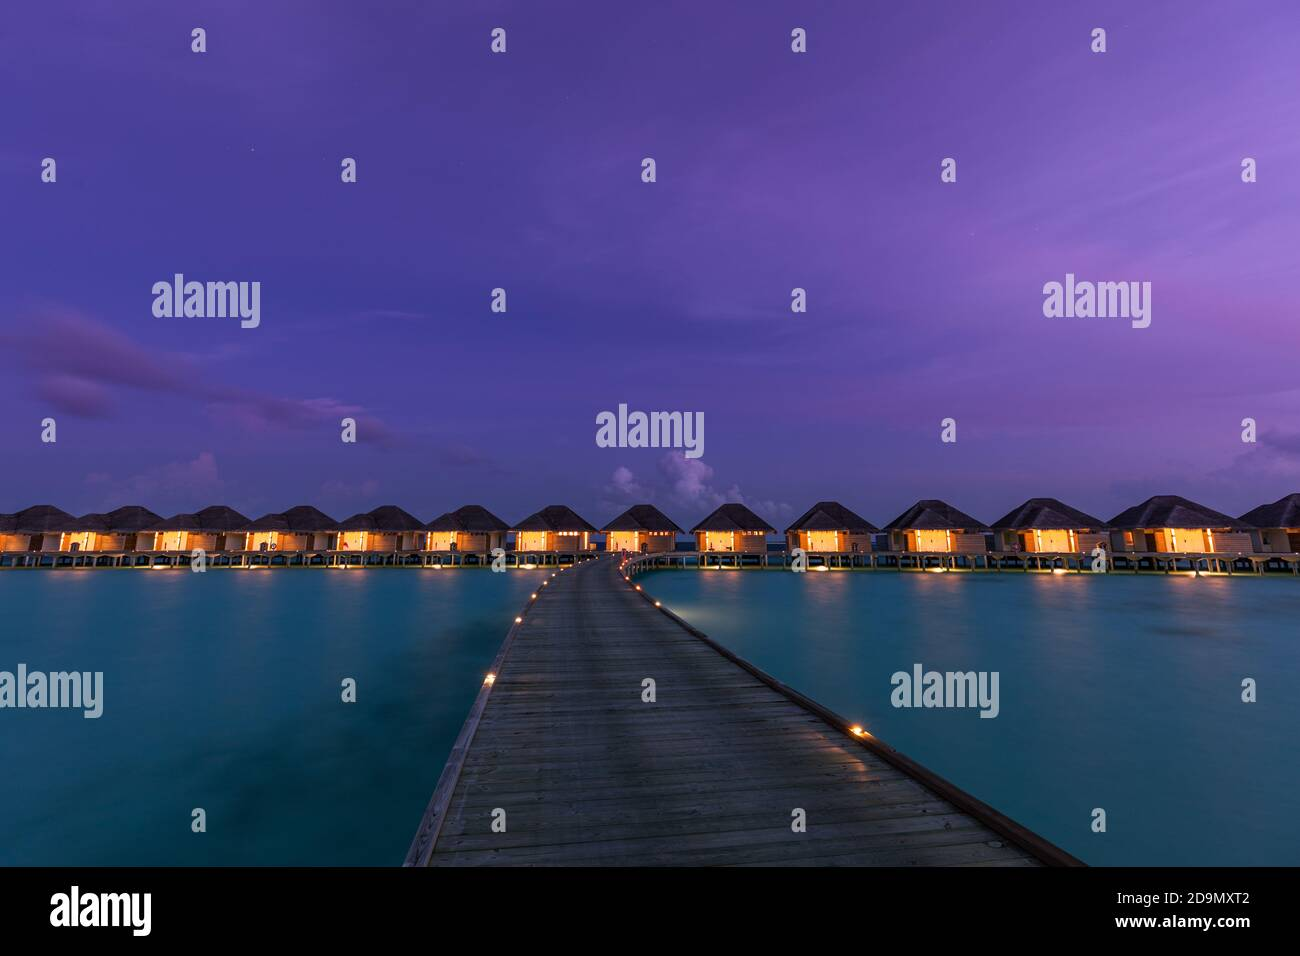 Overwater bungalows in Maldives islands. Tropical paradise island destination, led lights with long jetty under twilight night sky. Exotic landscape Stock Photo